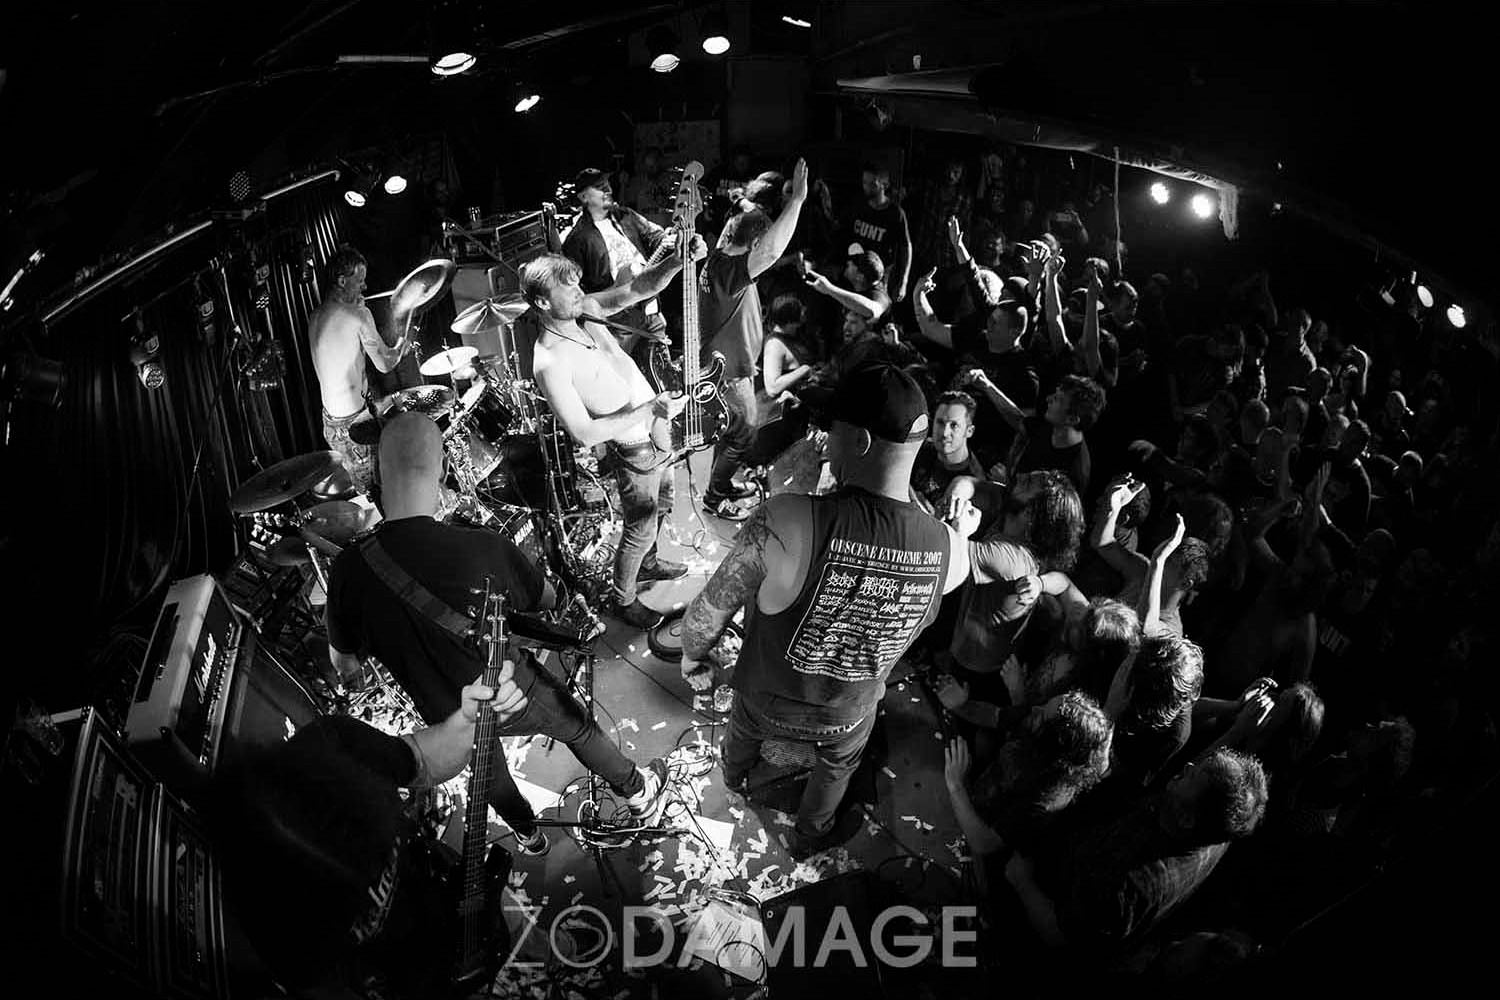 Blood Duster play their last show at The Tote © Zo Damage